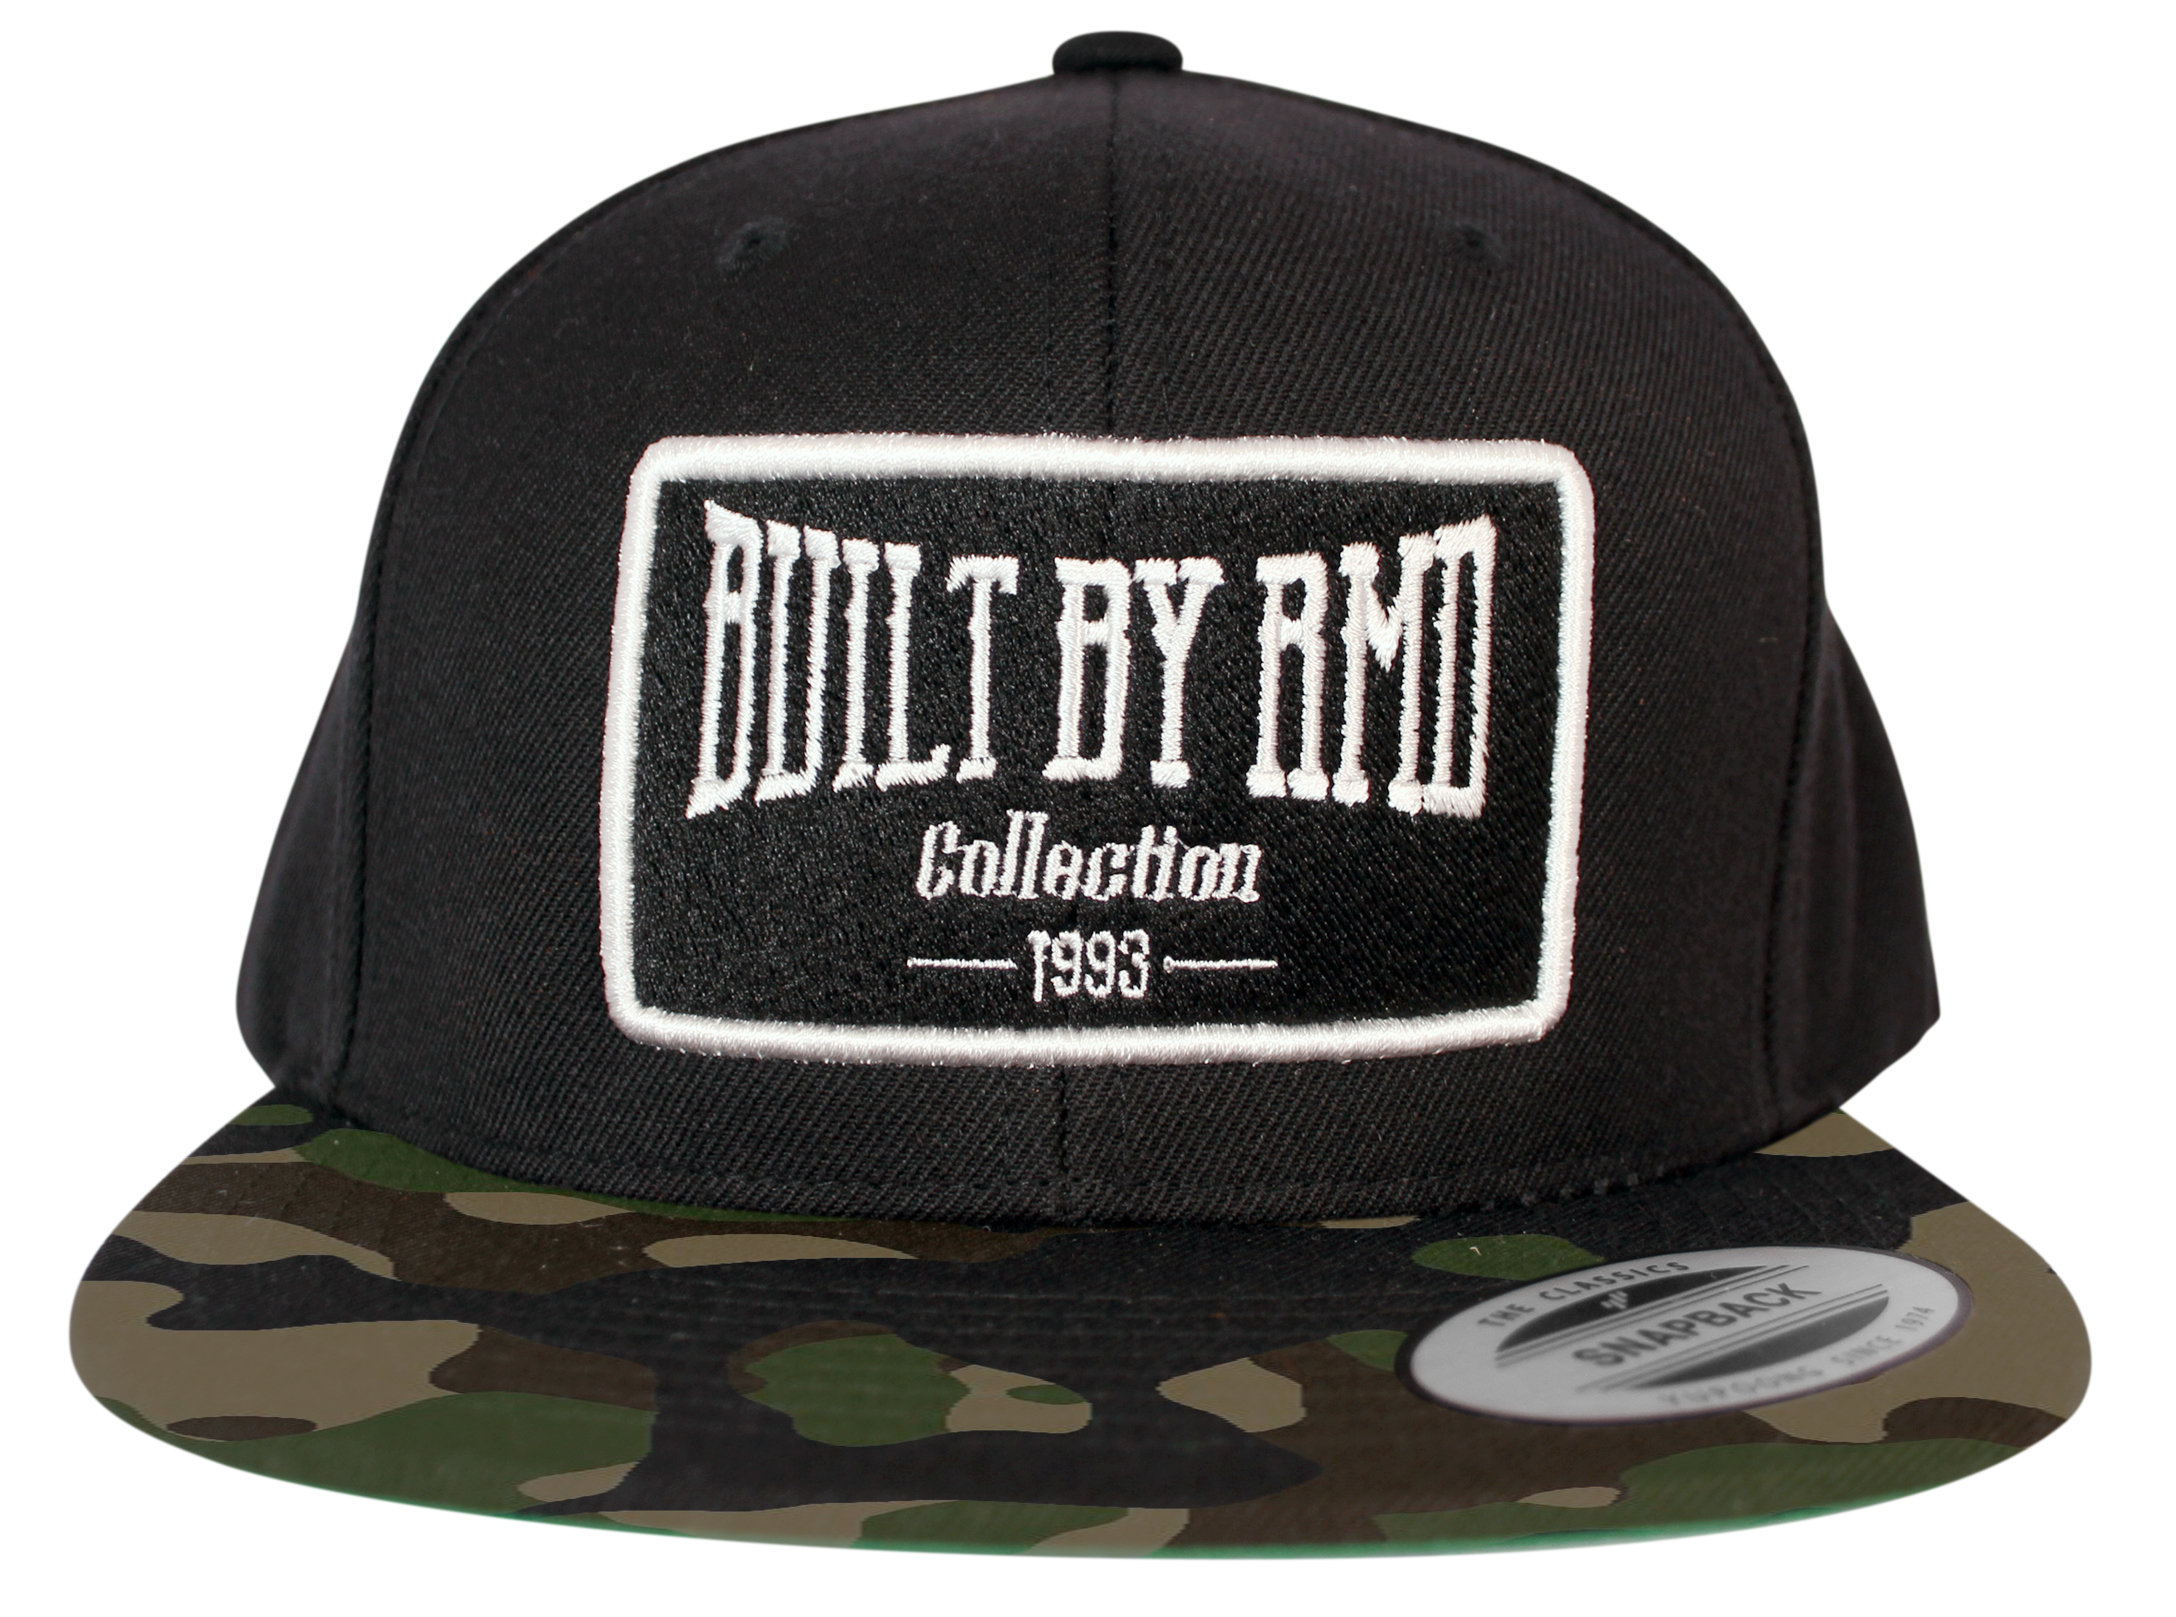 Built By RMD Cap  White on Black/Camo Snap Back 001R1800SBCA